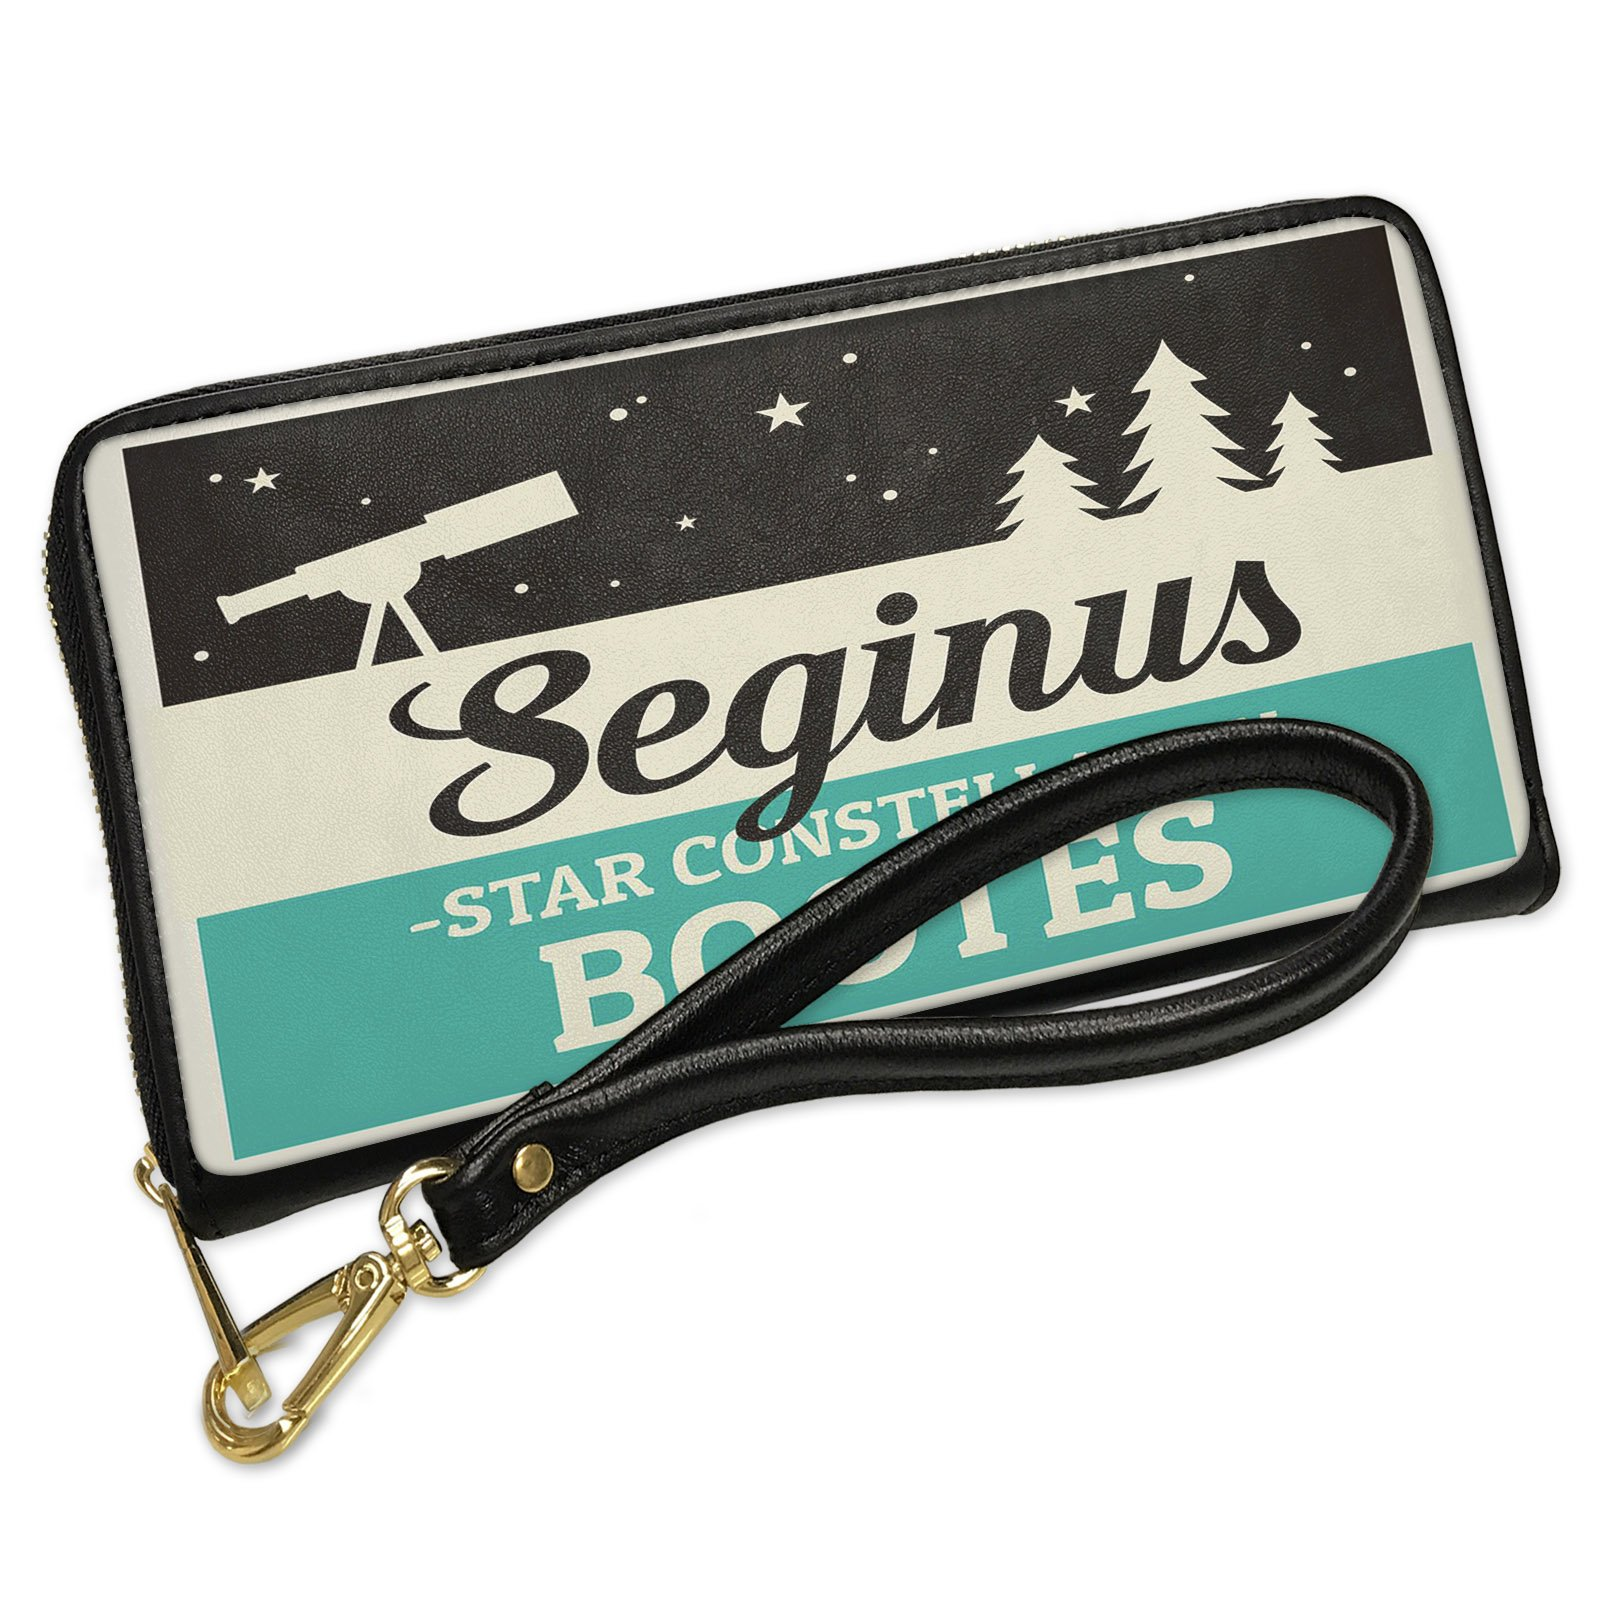 Wallet Clutch Star Constellation Name Bootes - Seginus with Removable Wristlet Strap Neonblond